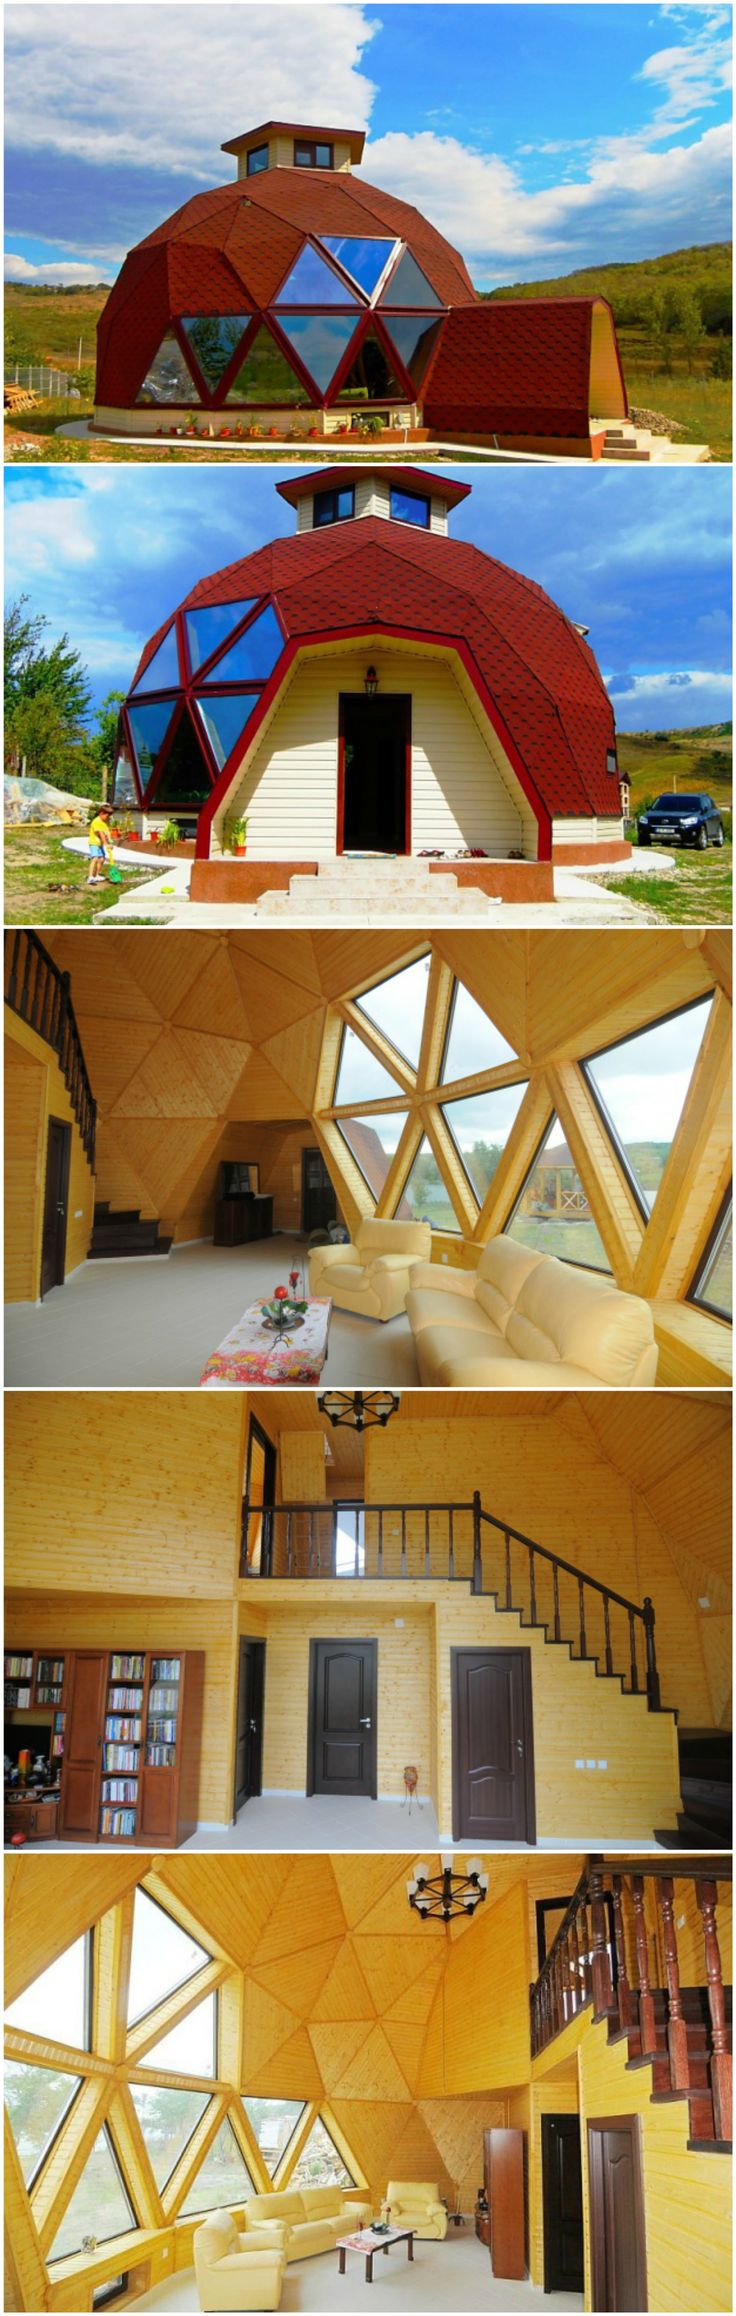 Transform a Geodesic Dome into a cozy